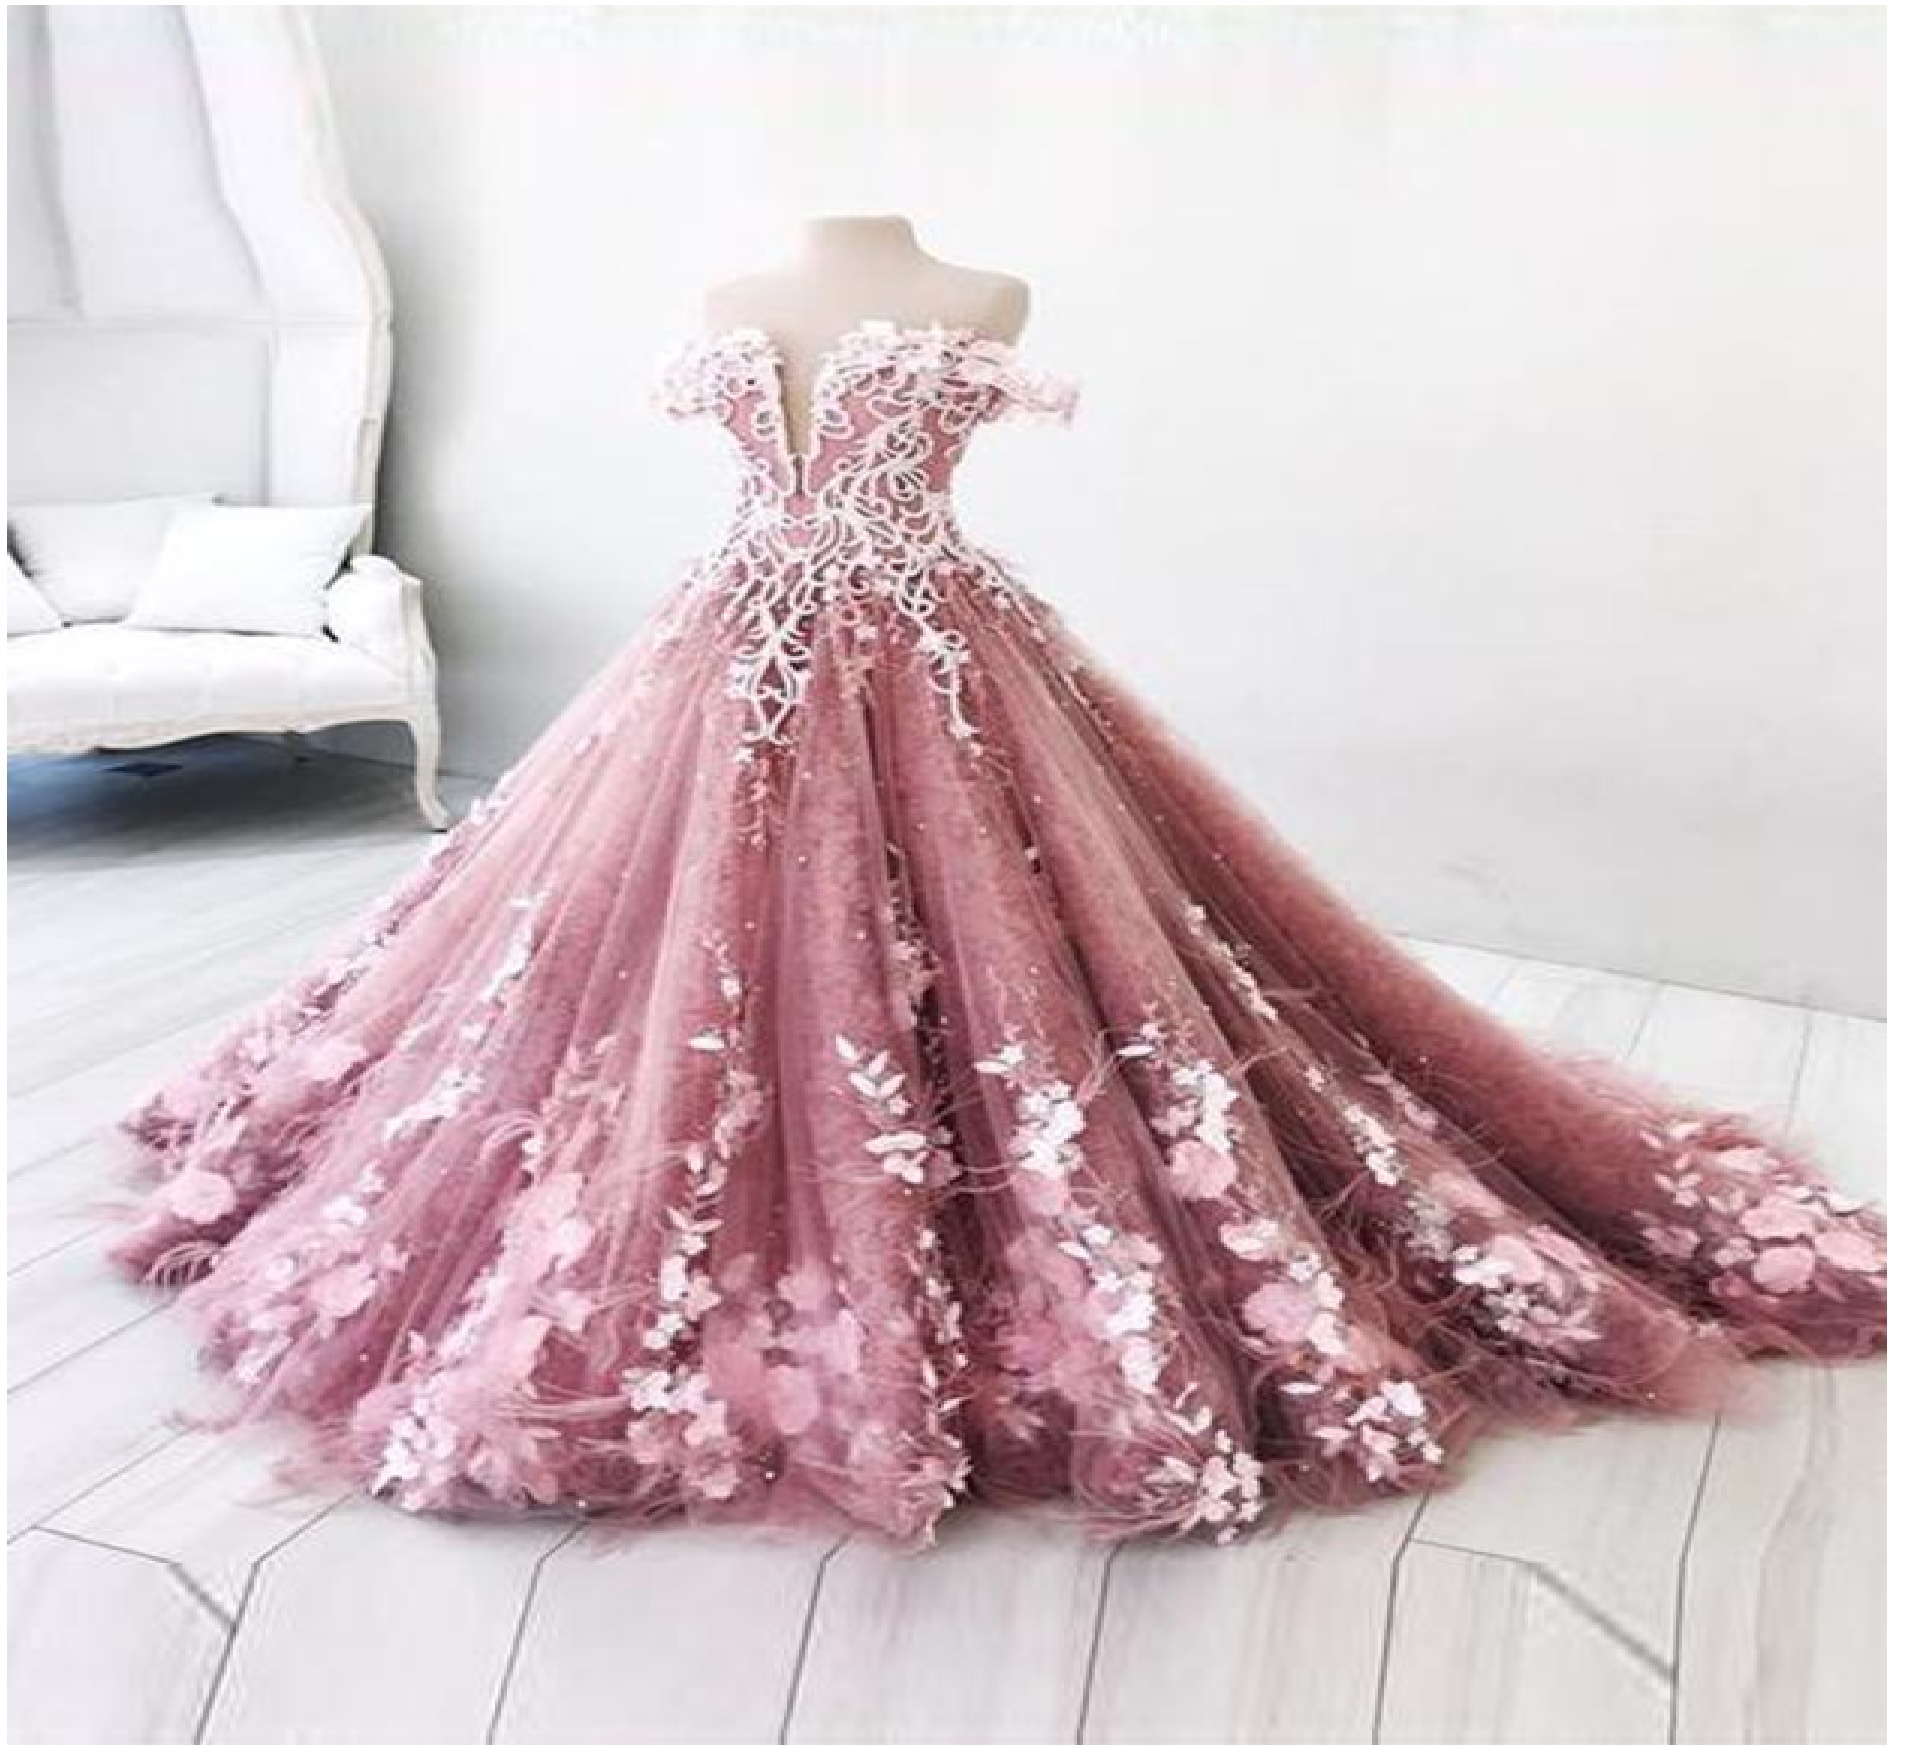 A Beautiful Dress